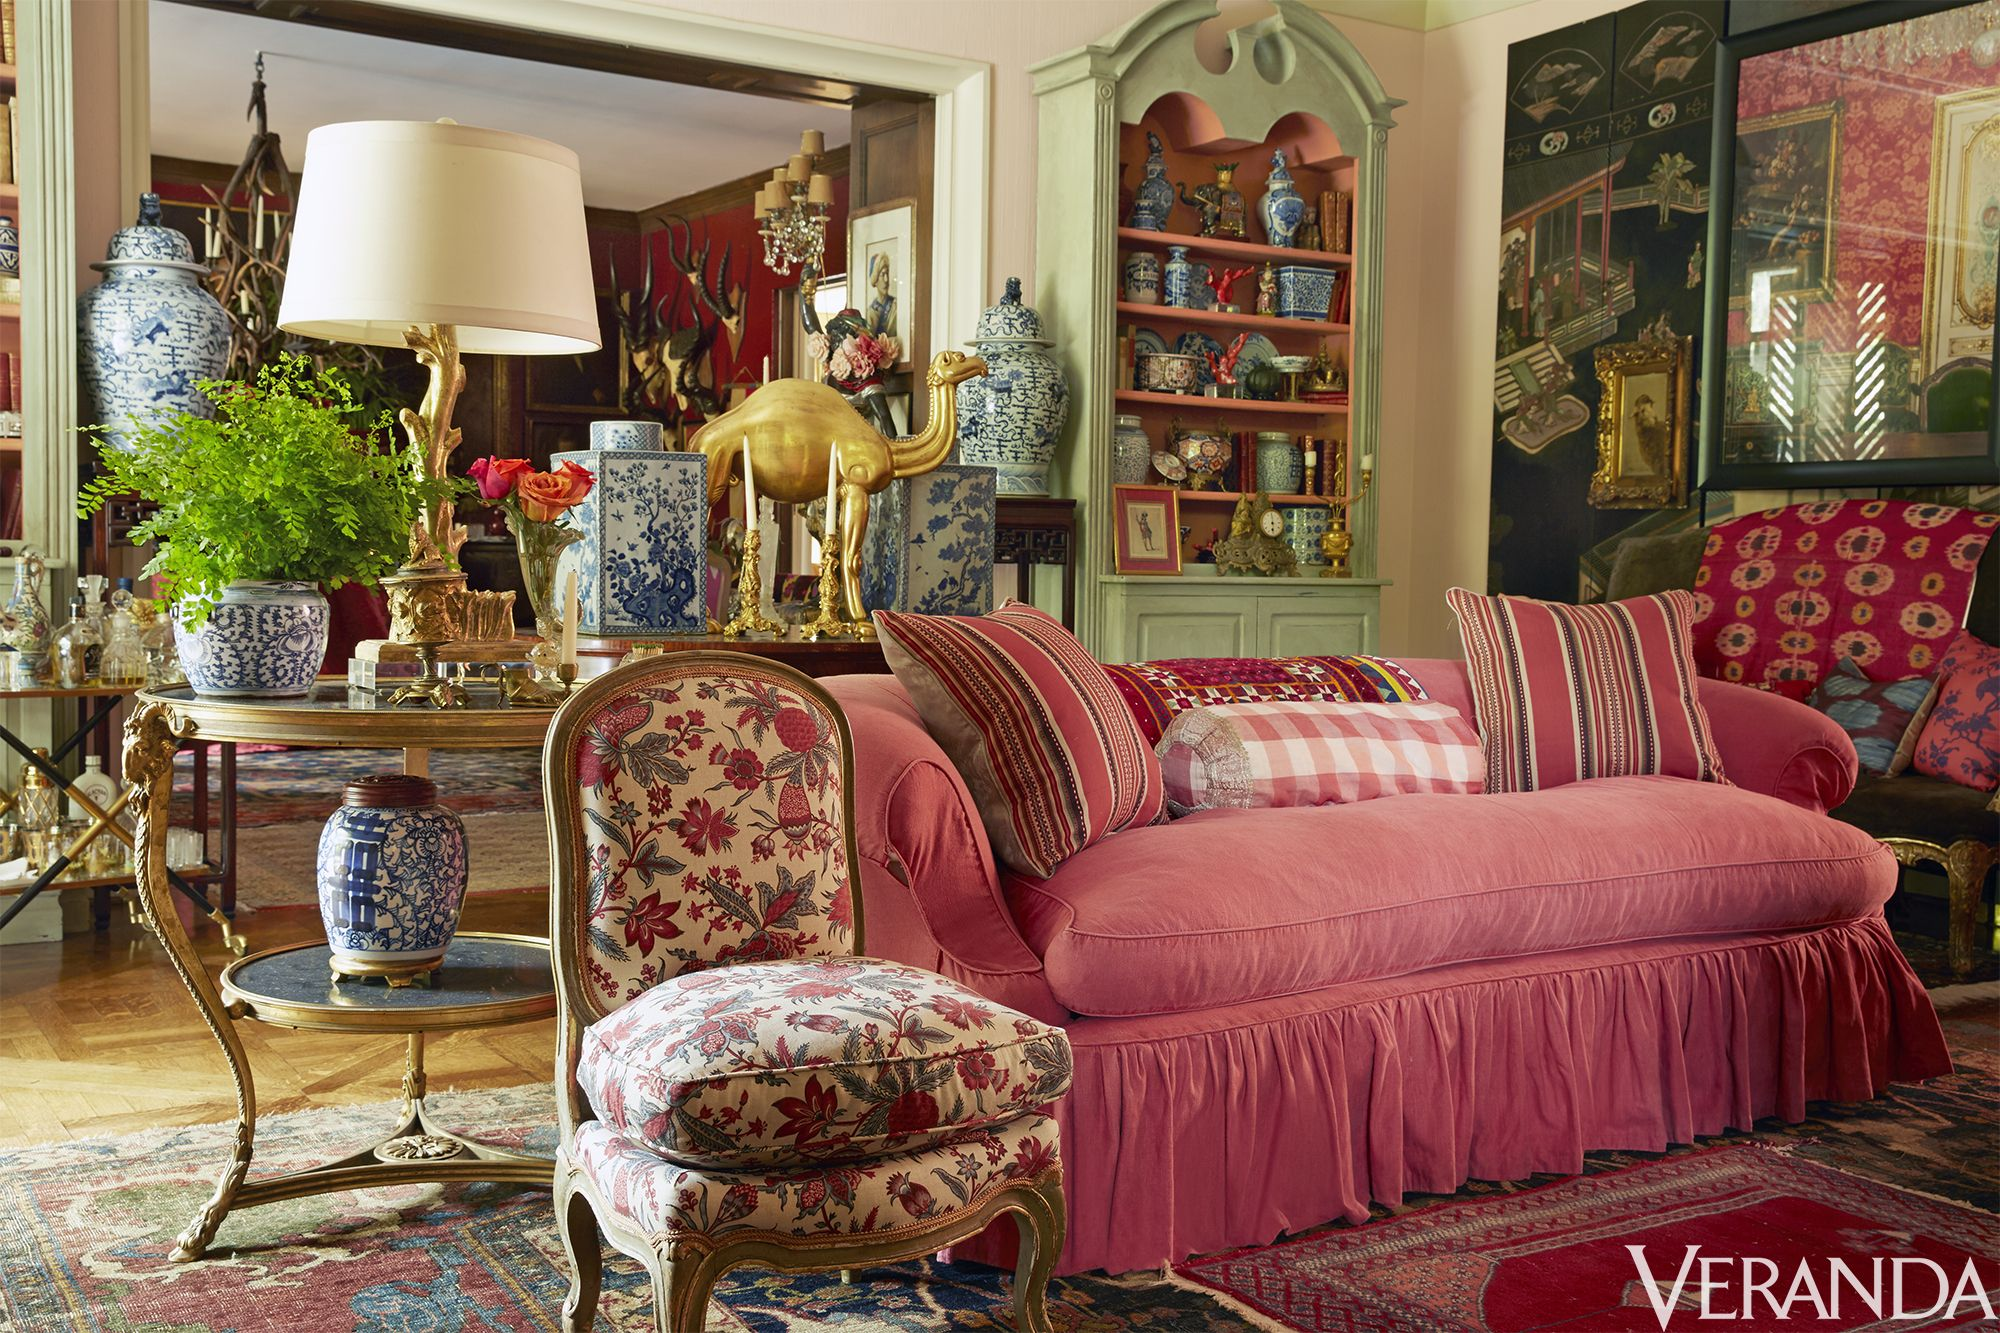 Feast Your Eyes On The Carefully Crafted Spaces That Designers Retreat To U2014  And Draw Inspiration From Their Whimsical Use Of Color And Pattern, ...